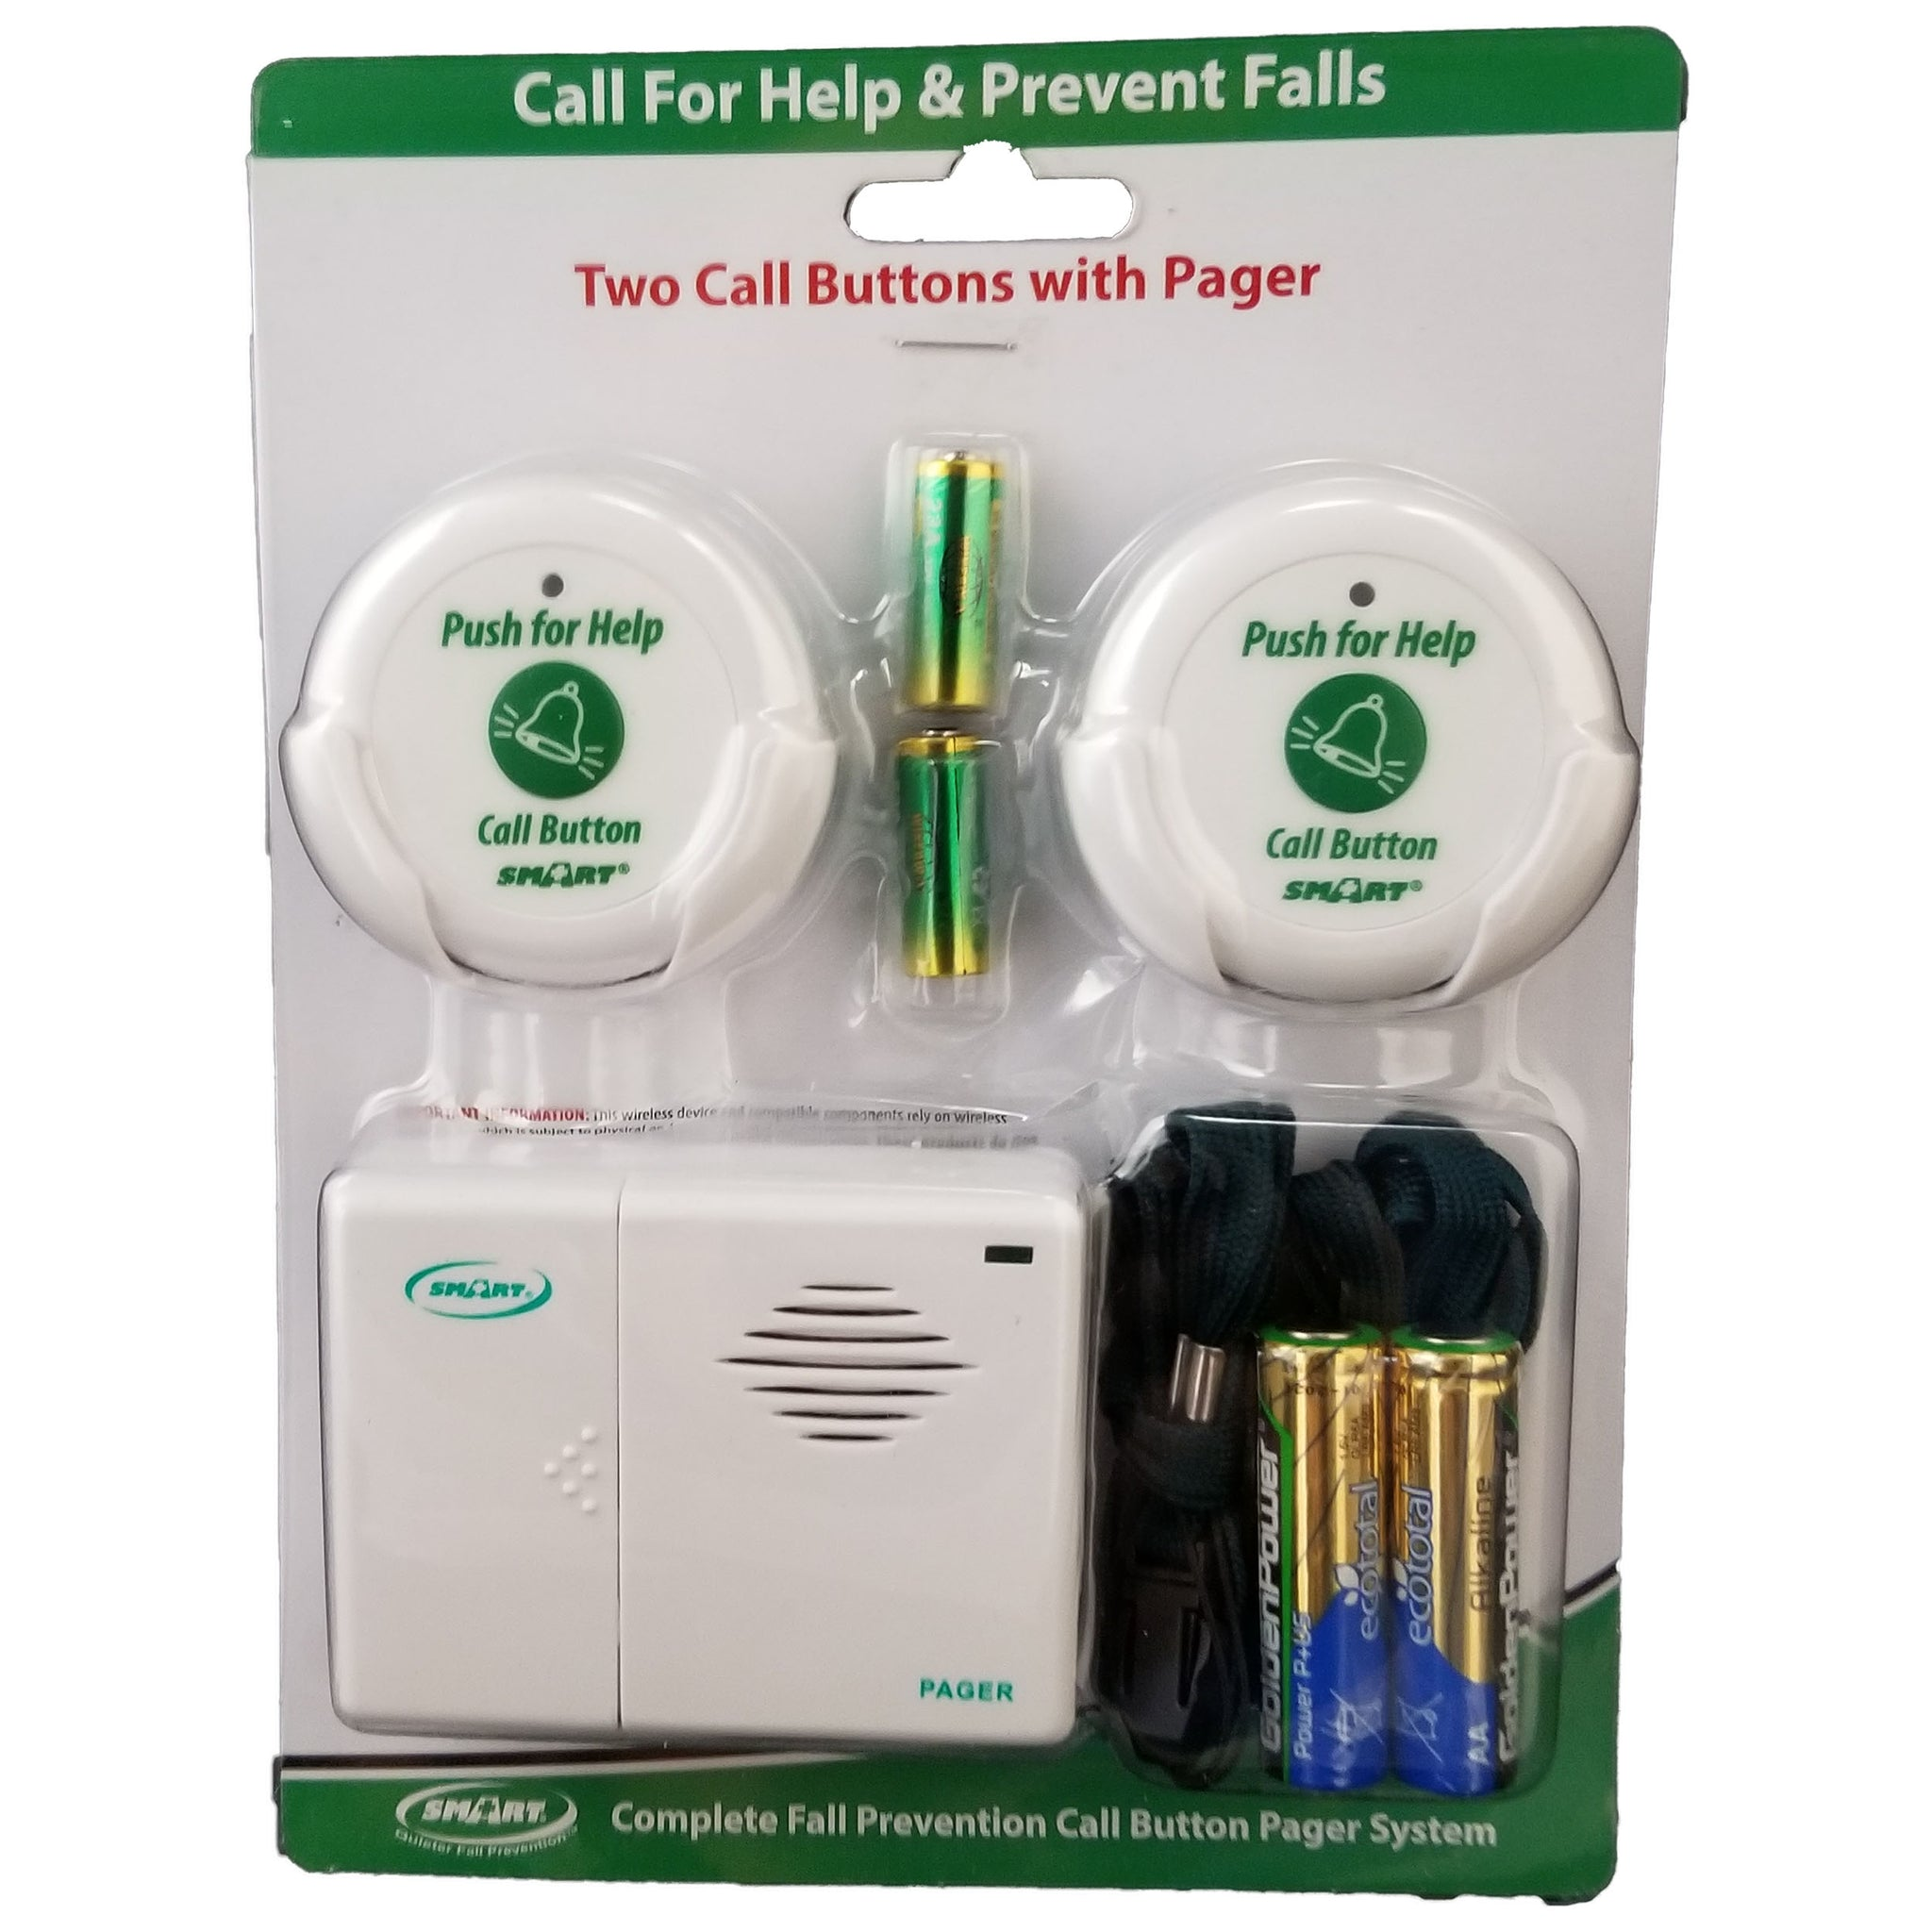 Smart Caregiver Two Call Buttons with Caregiver Pager System